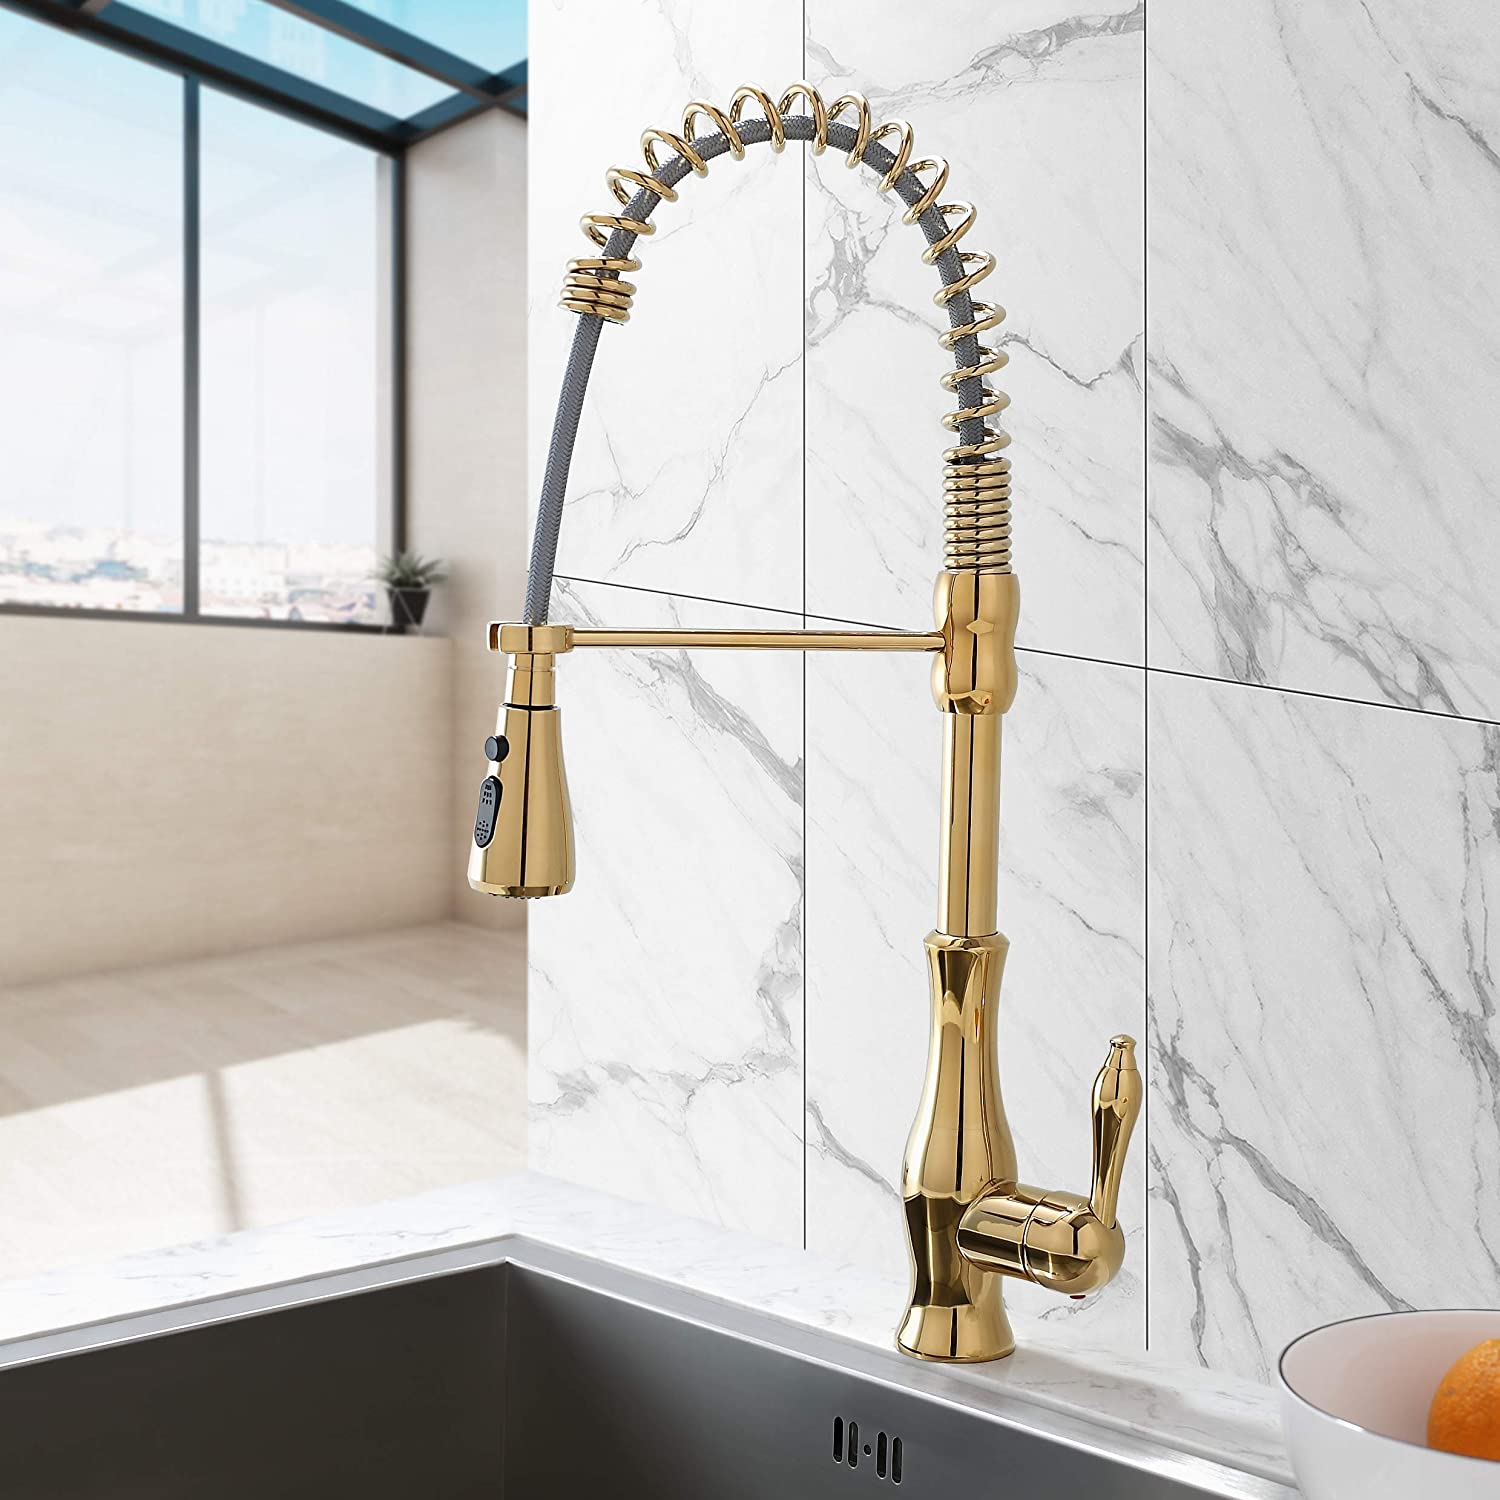 Lovedima Modern Gold Kitchen Faucet With Pull Down Sprayer High Arc Single Handle Swiveling Kitchen Sink Faucet Lead Free Solid Brass Kitchen Faucet Gold Amazon Com